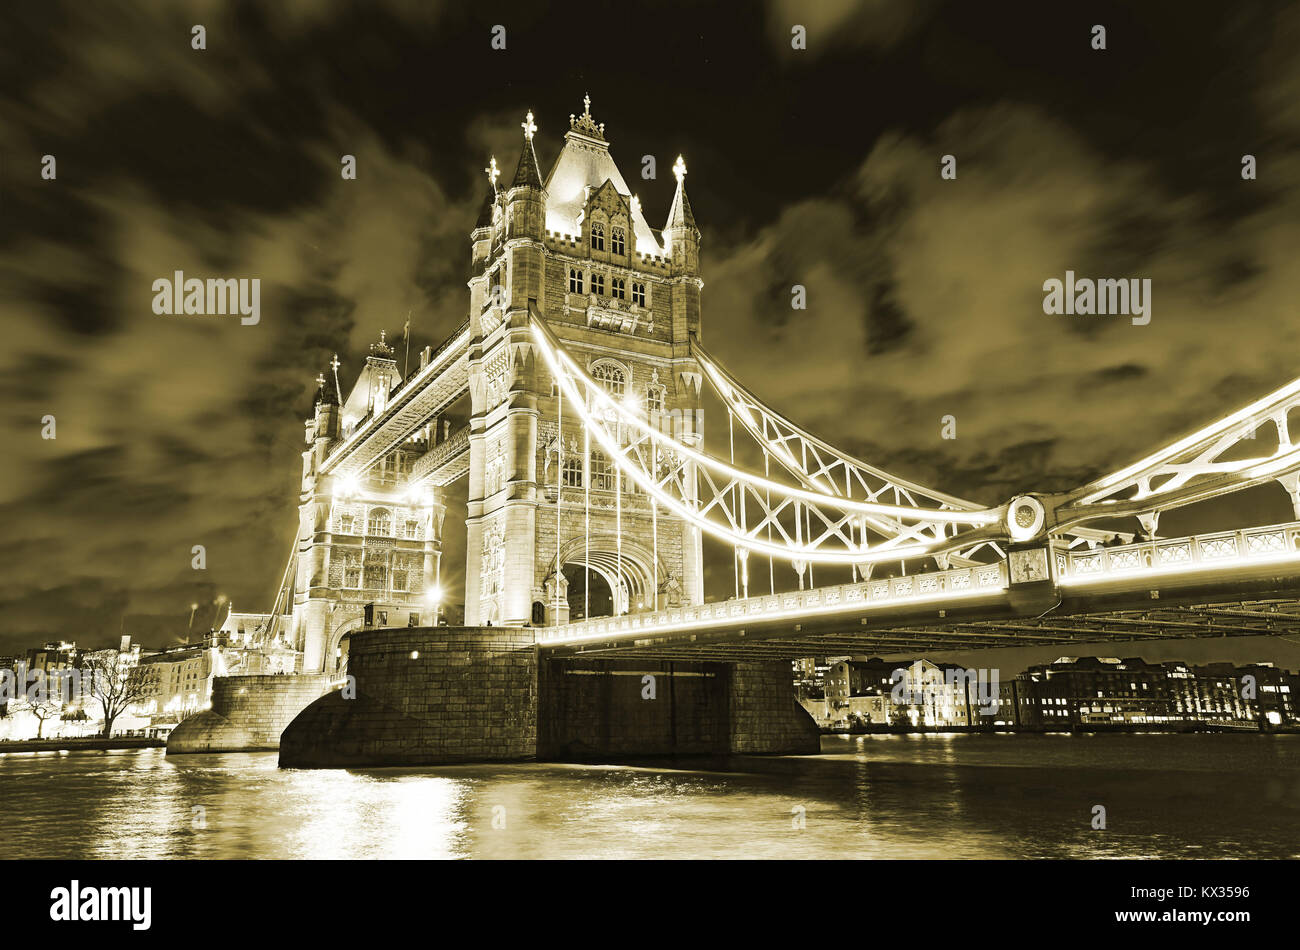 View of Tower Bridge in London at night. - Stock Image